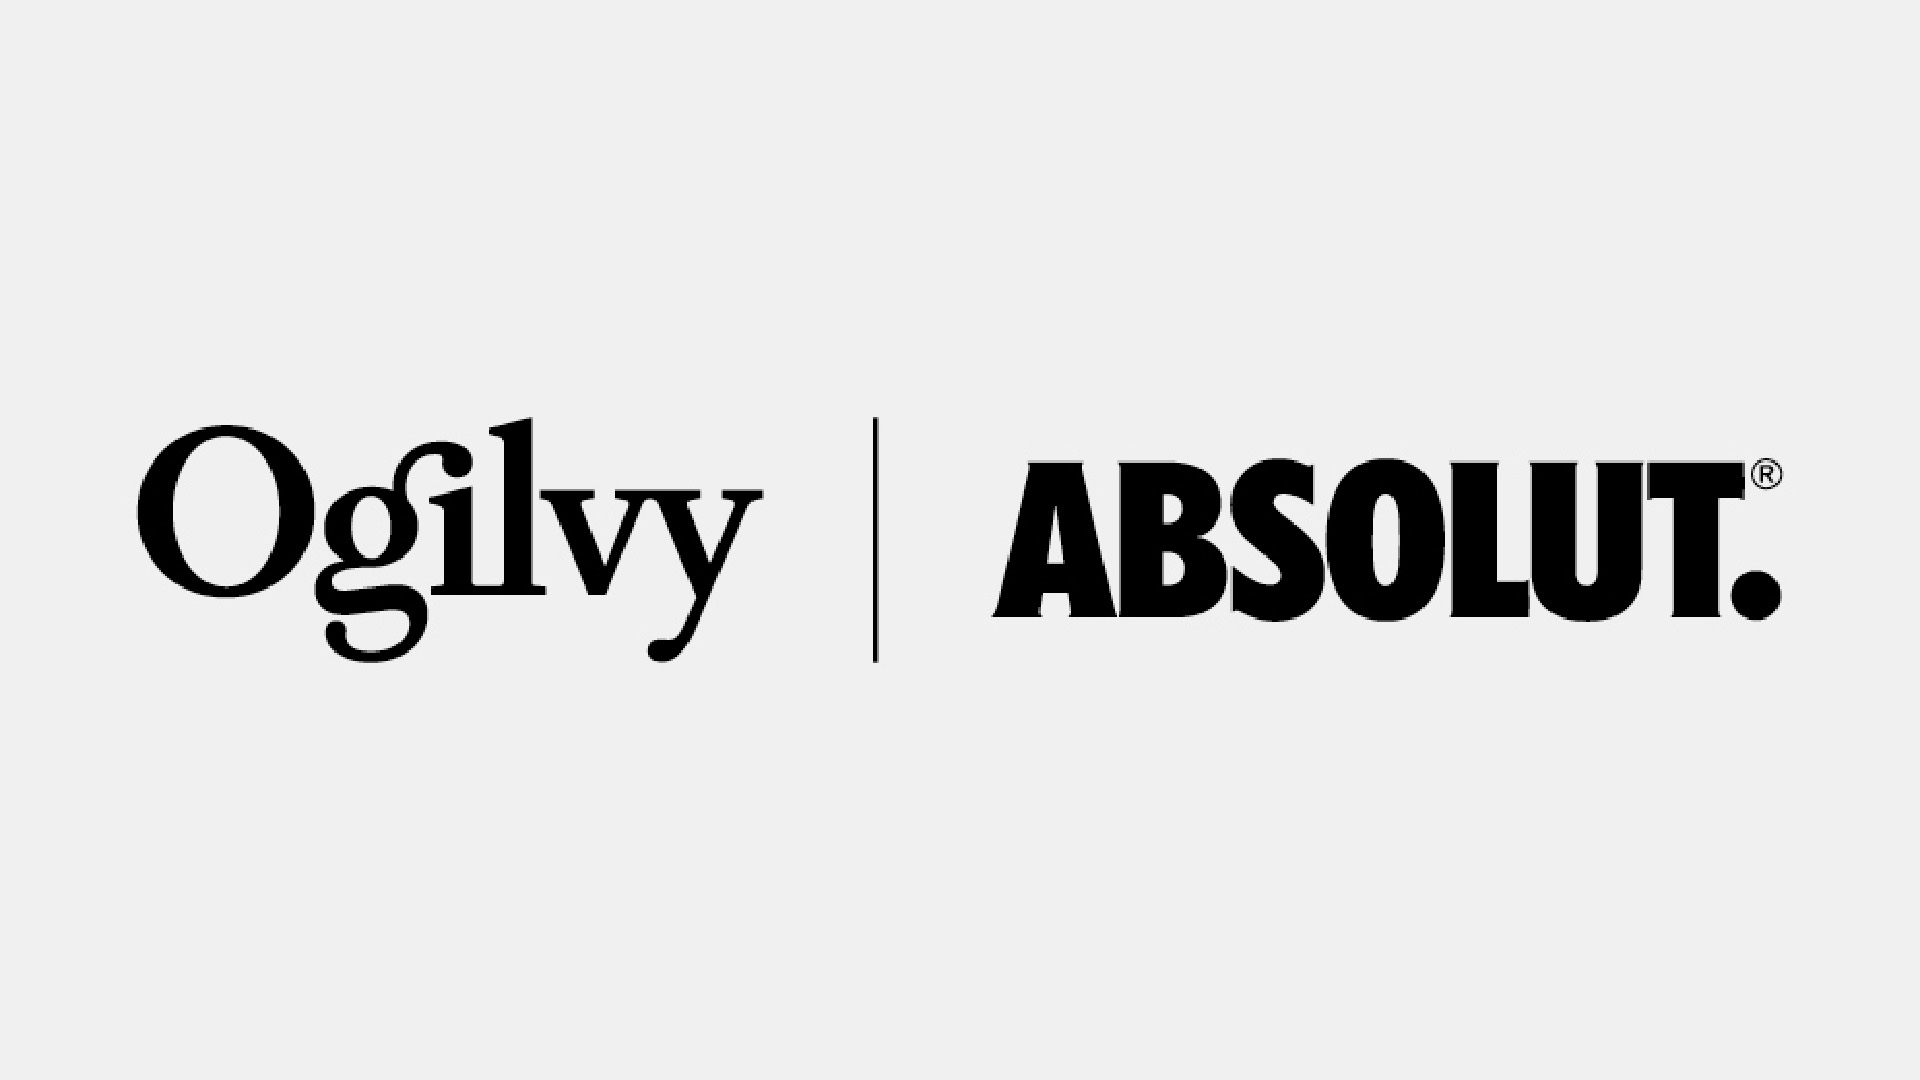 Absolut spent around $768,000 on tracked media in the U.S. last year.